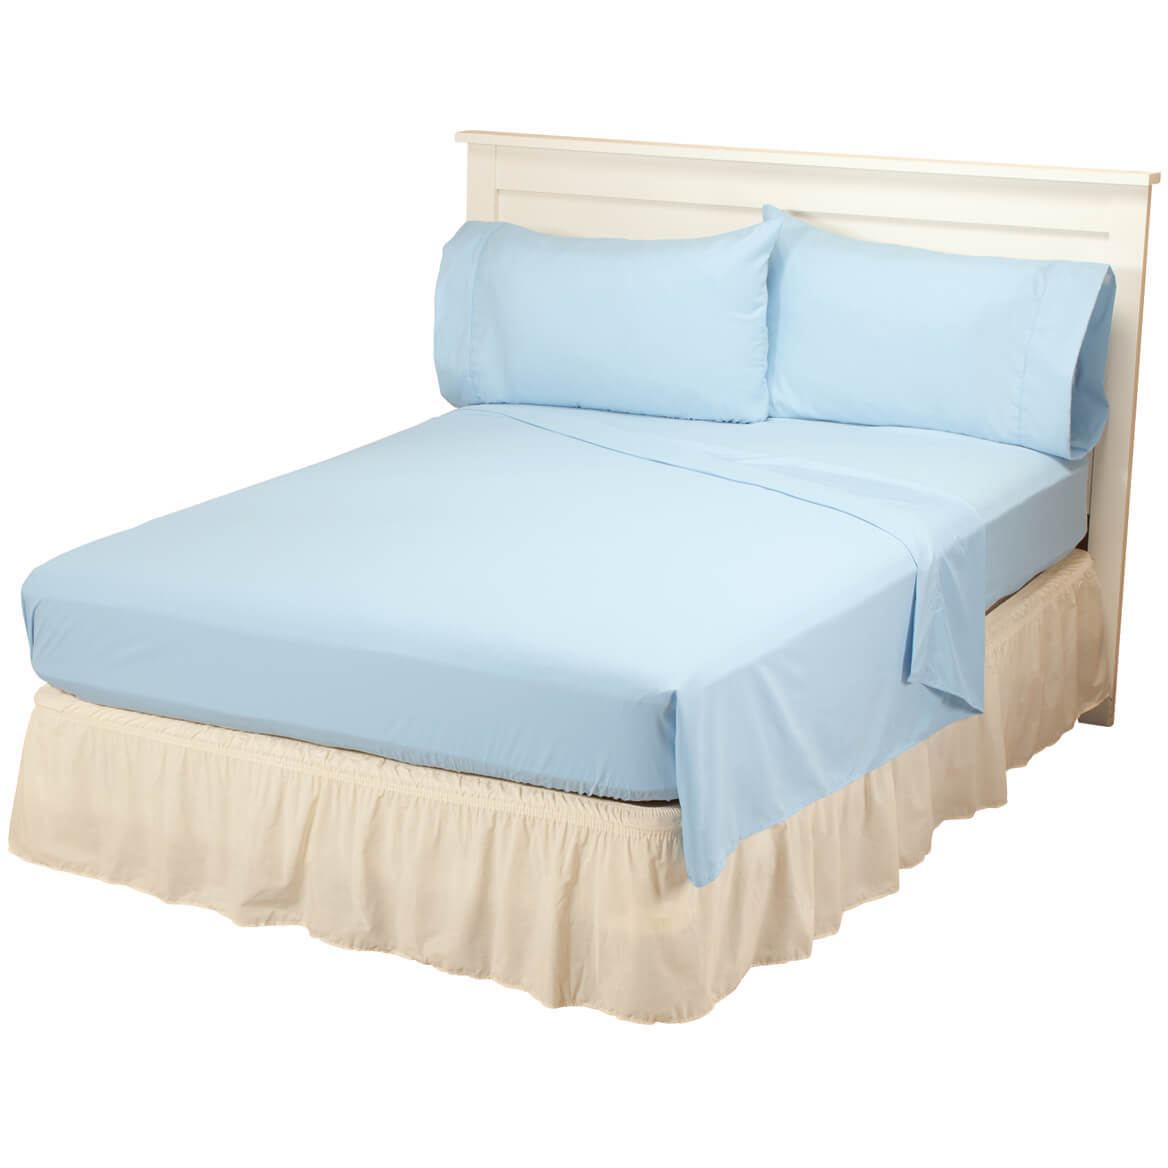 Bed-Tite™ Microfiber Sheets-358243